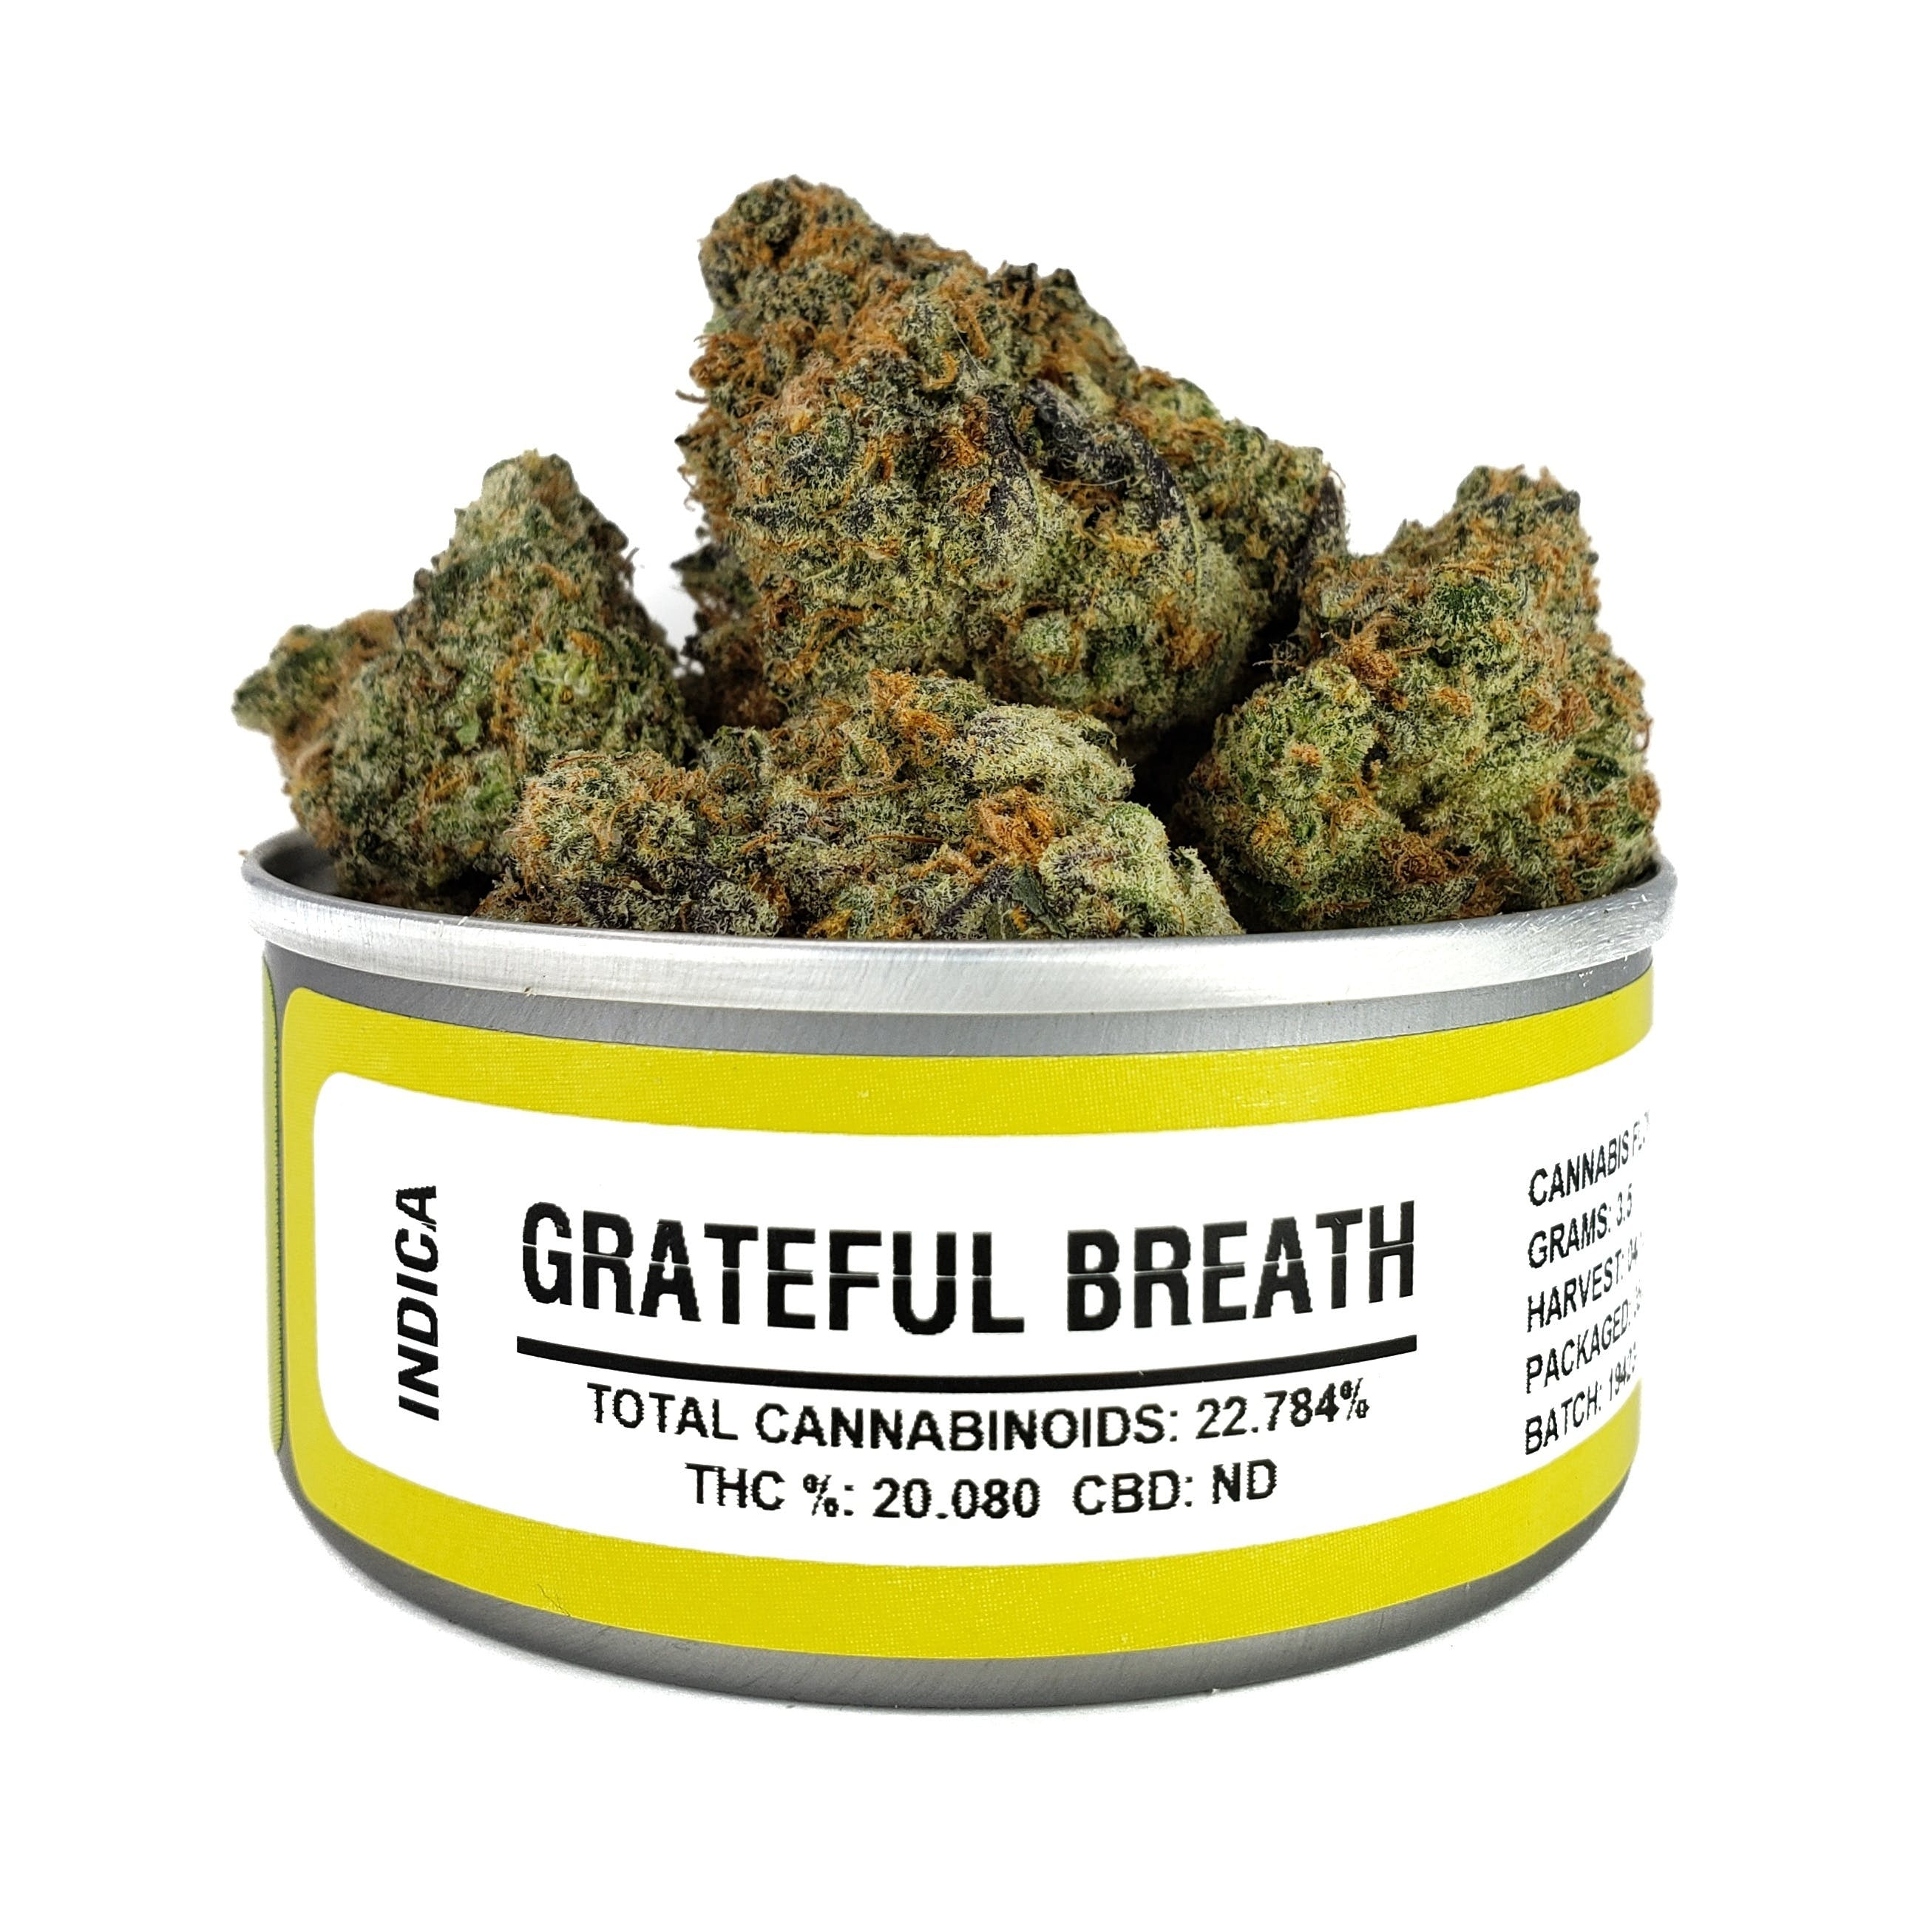 Space Monkey Meds Featured Products Details Weedmaps